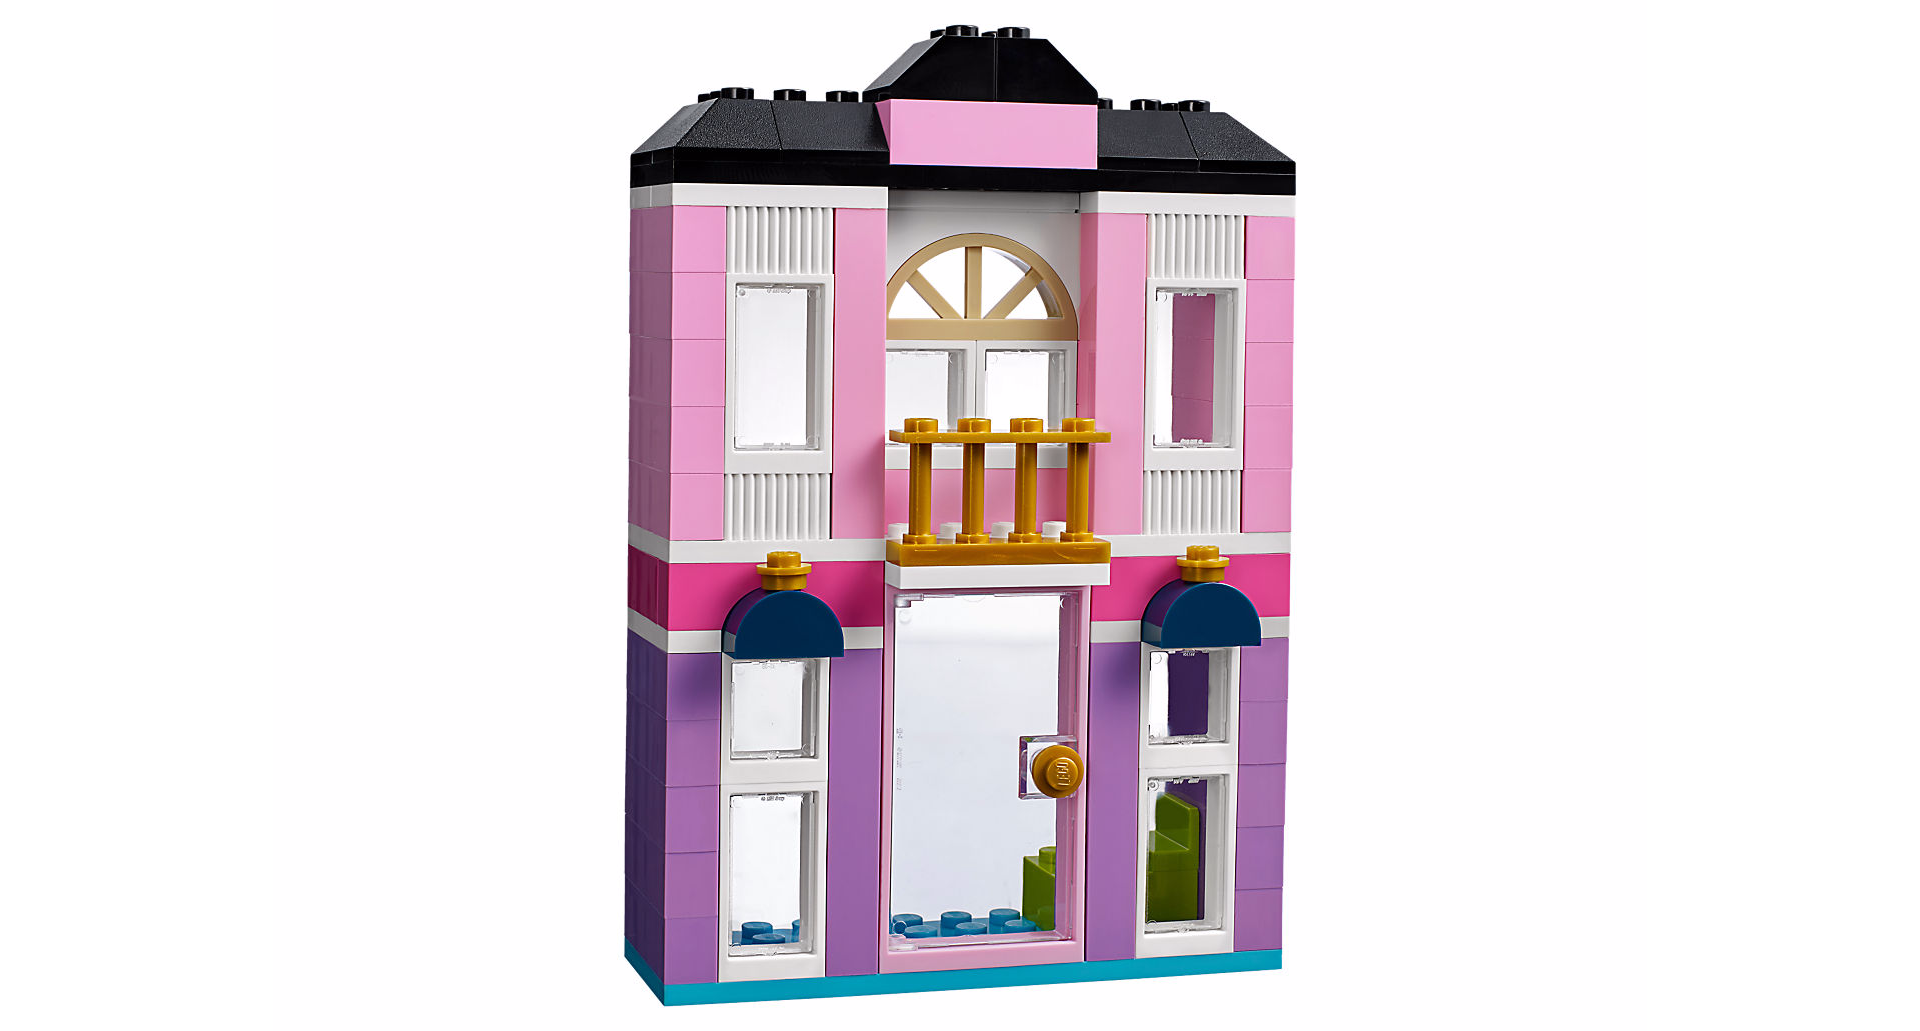 lego classic bo te de constructions urbaines. Black Bedroom Furniture Sets. Home Design Ideas